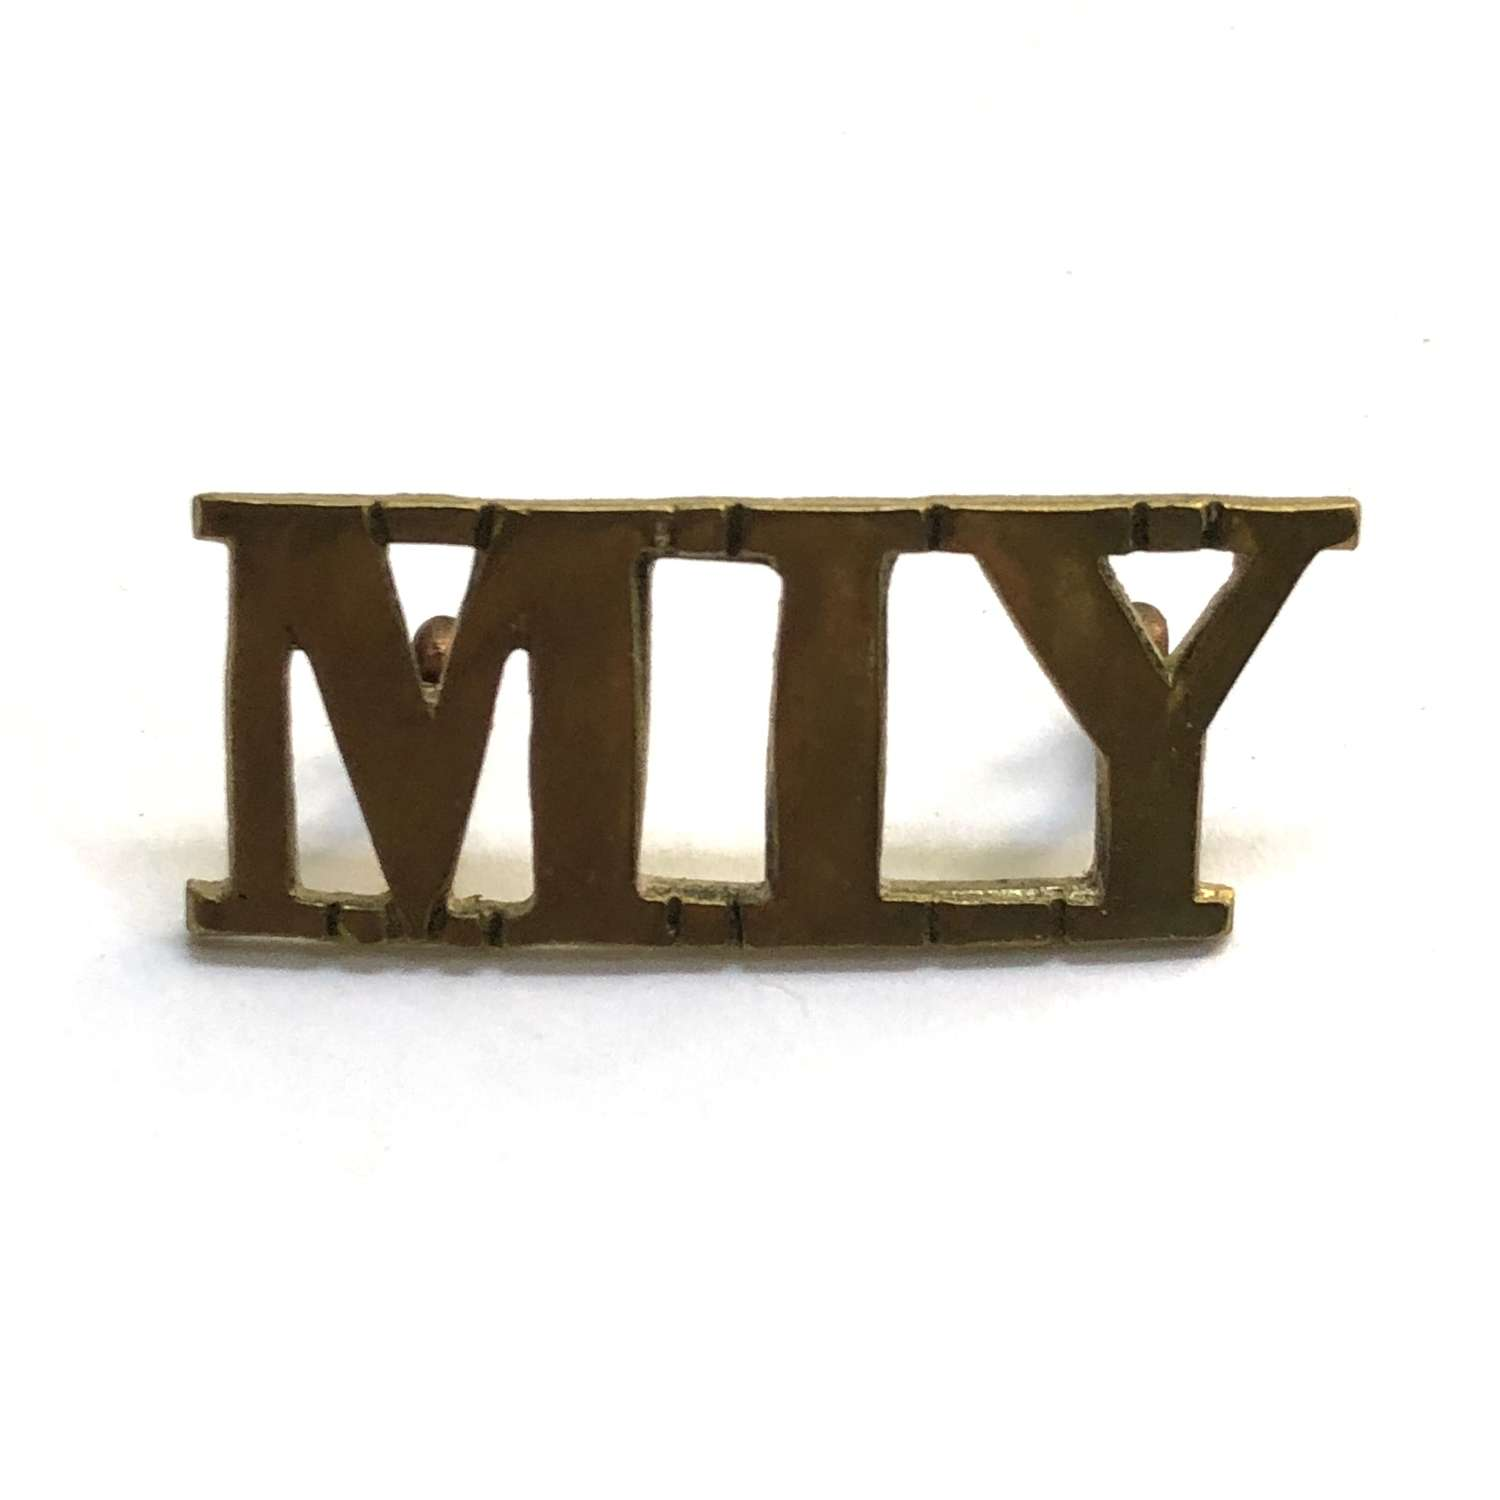 Welsh. MIY (Montgomeryshire Imperial Yeomanry) brass title c1901-08